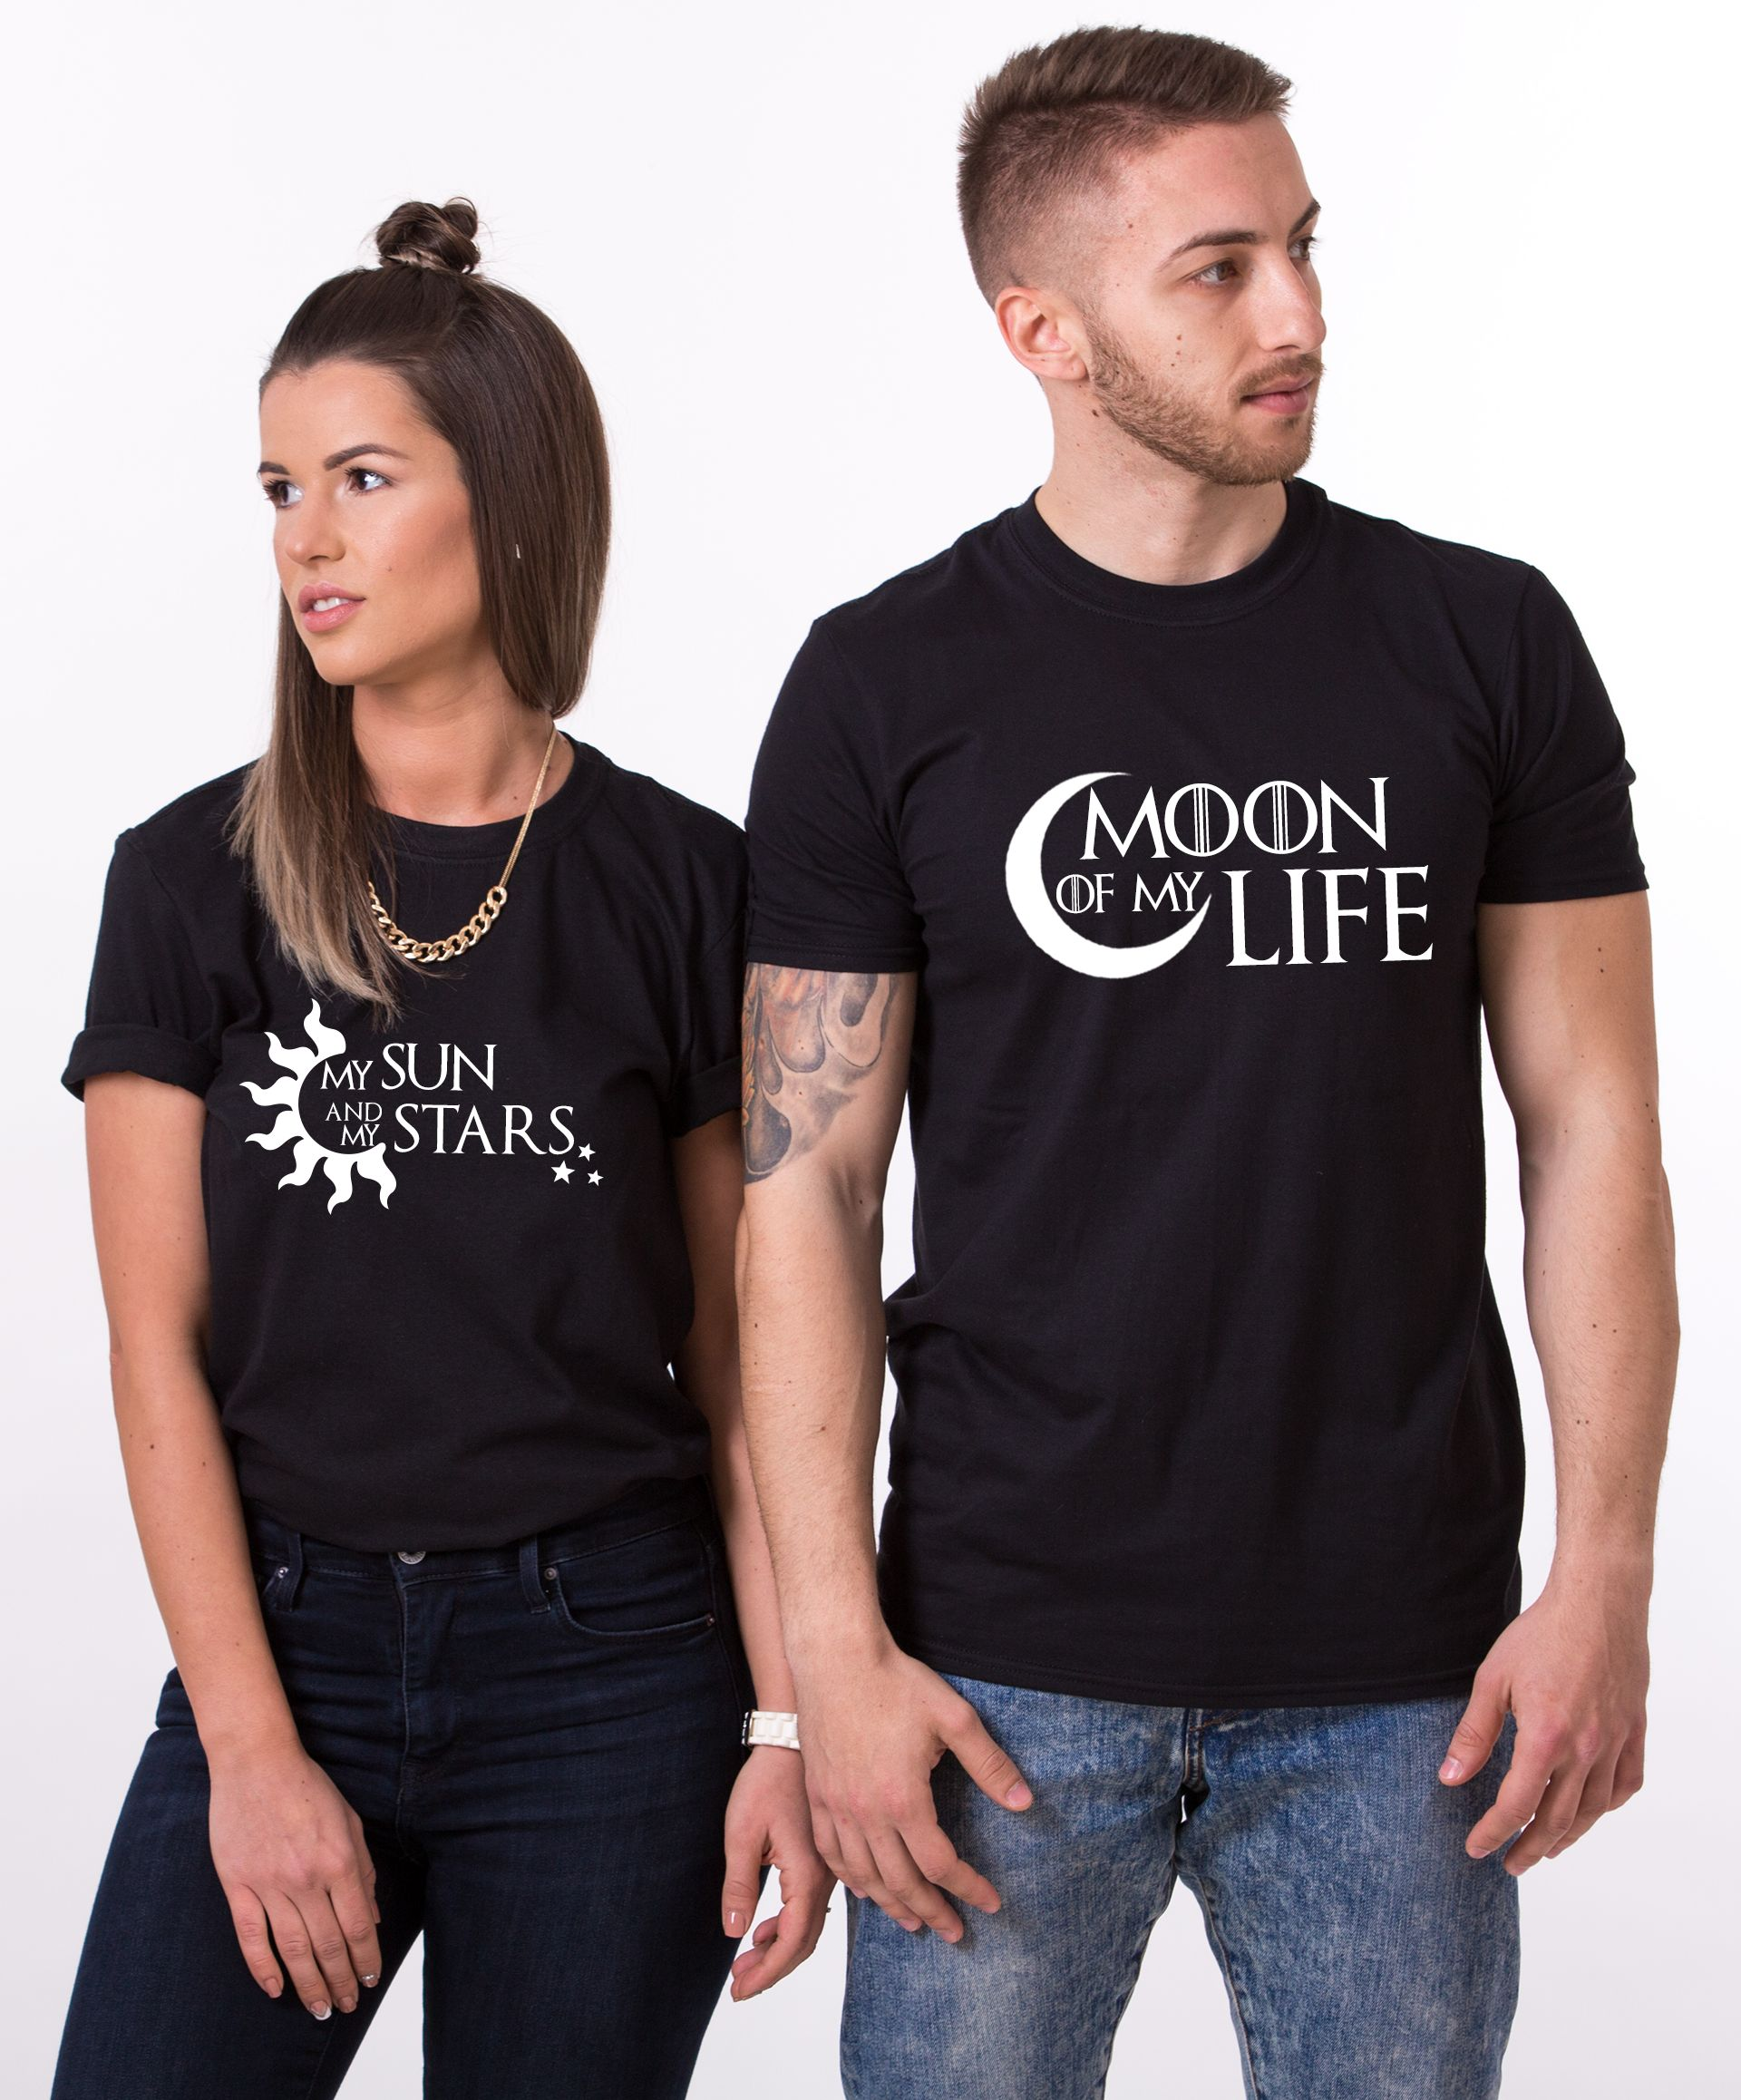 Valentine's day gift,His and hers shirts,His and hers,Couples shirts, Love shirts,Couple t-shirts,Moon of my life,My Sun and my Stars UNISEX